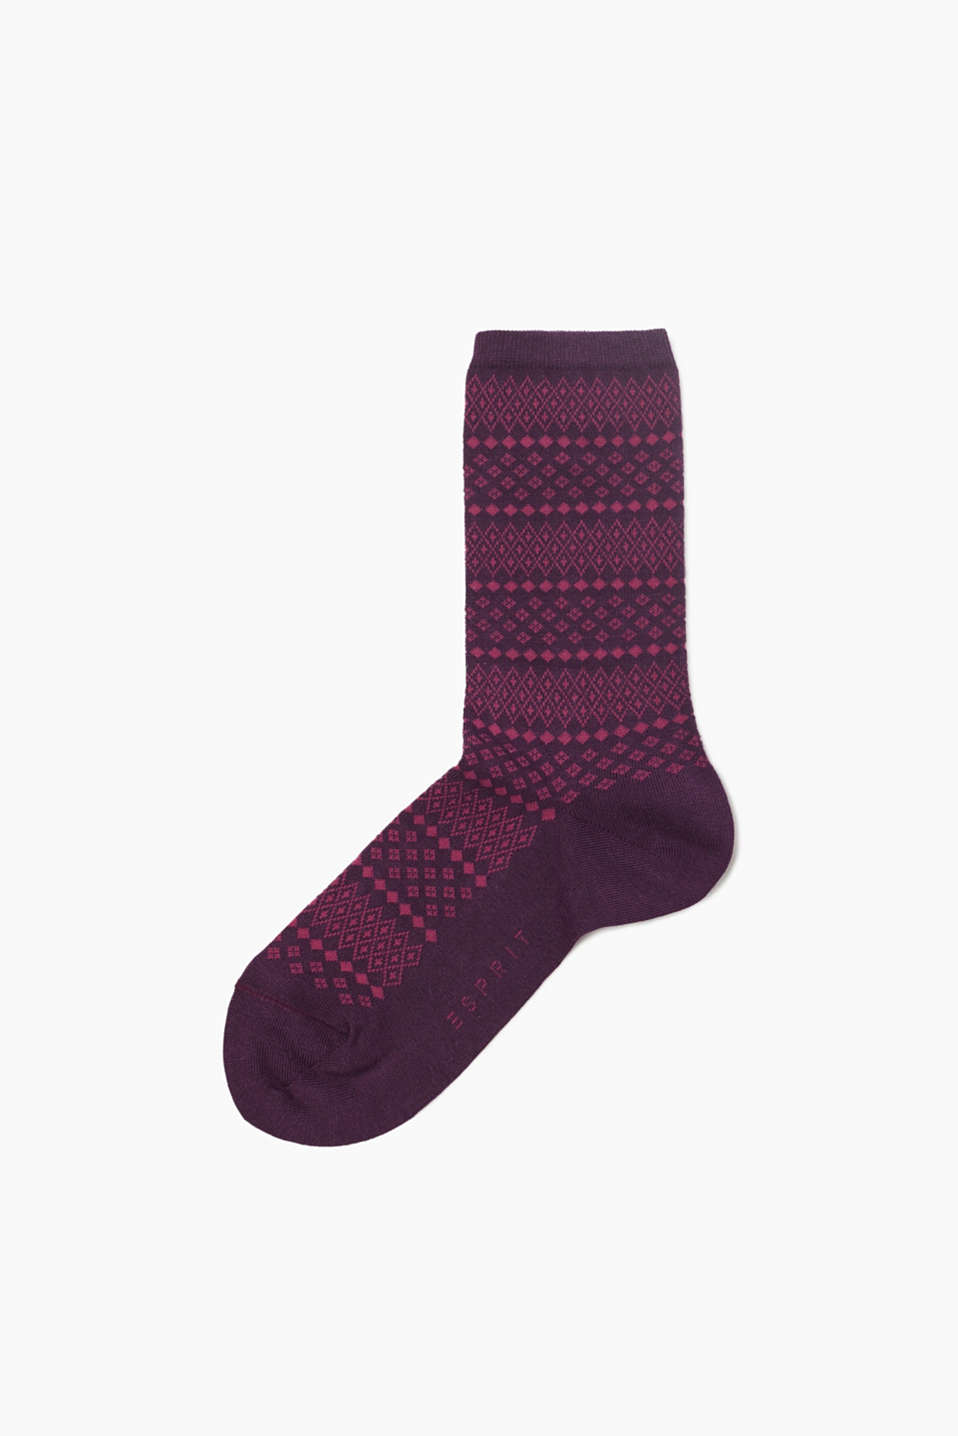 Socks with a Scandinavian pattern, made of a soft and stretchy cotton blend